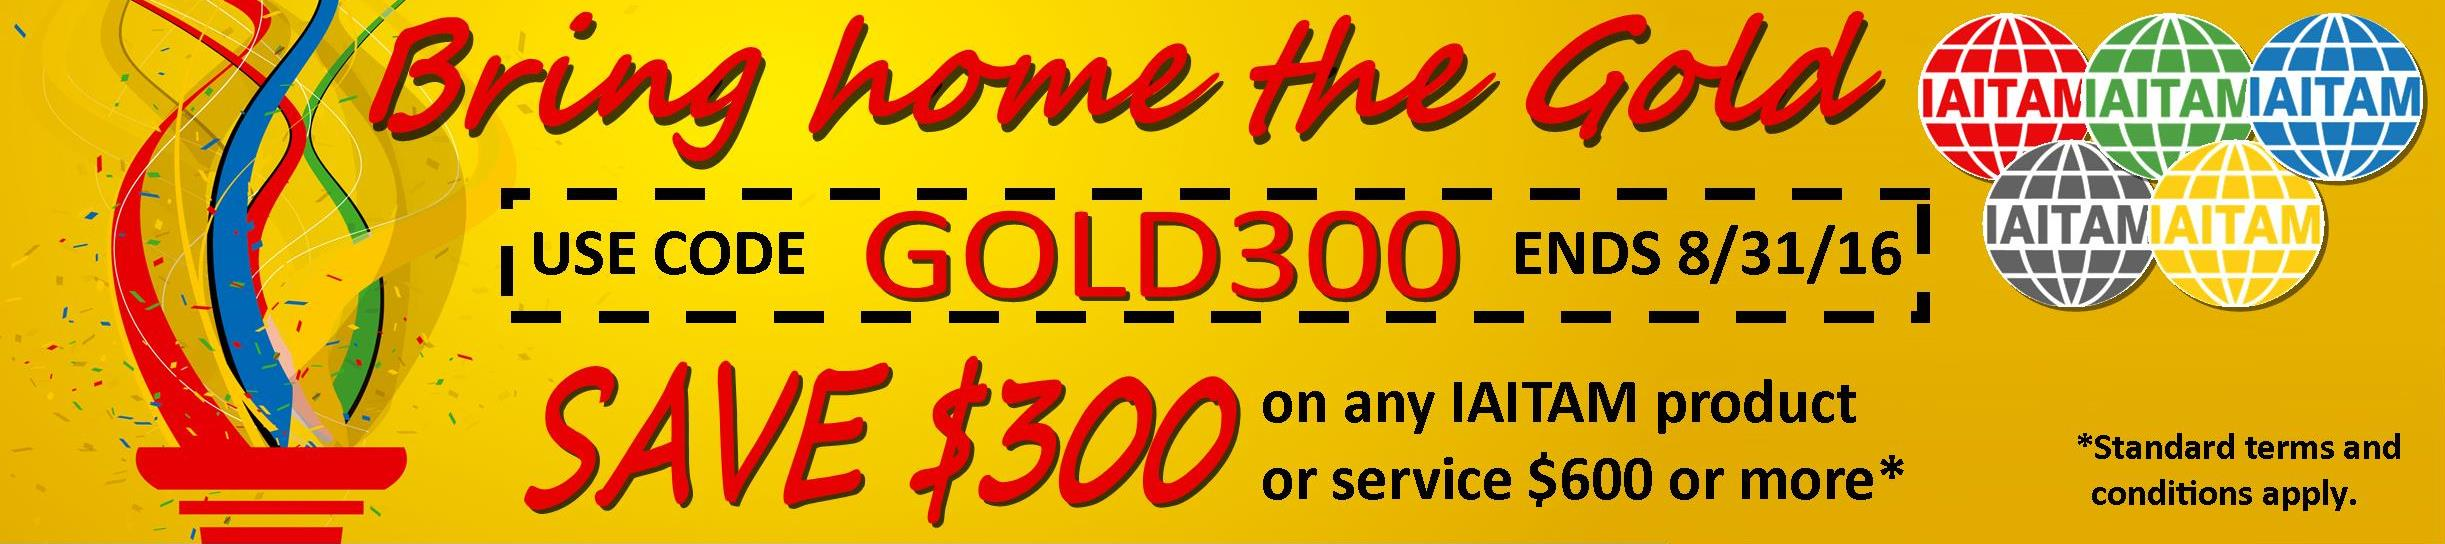 GOLD300 ends 8/31/2016